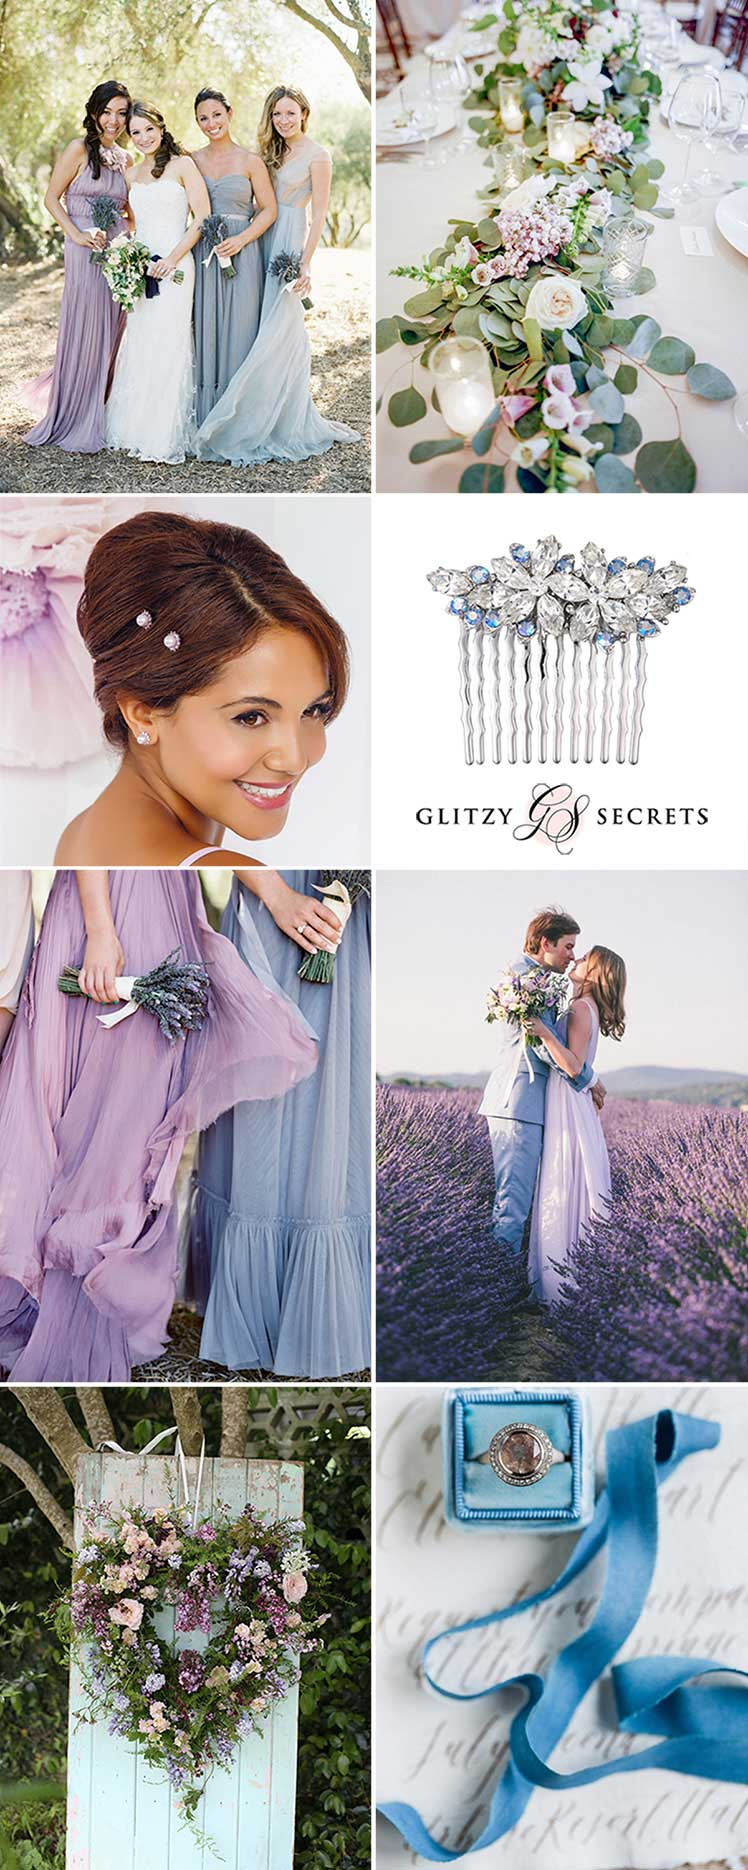 Lilac and Blue wedding inspiration